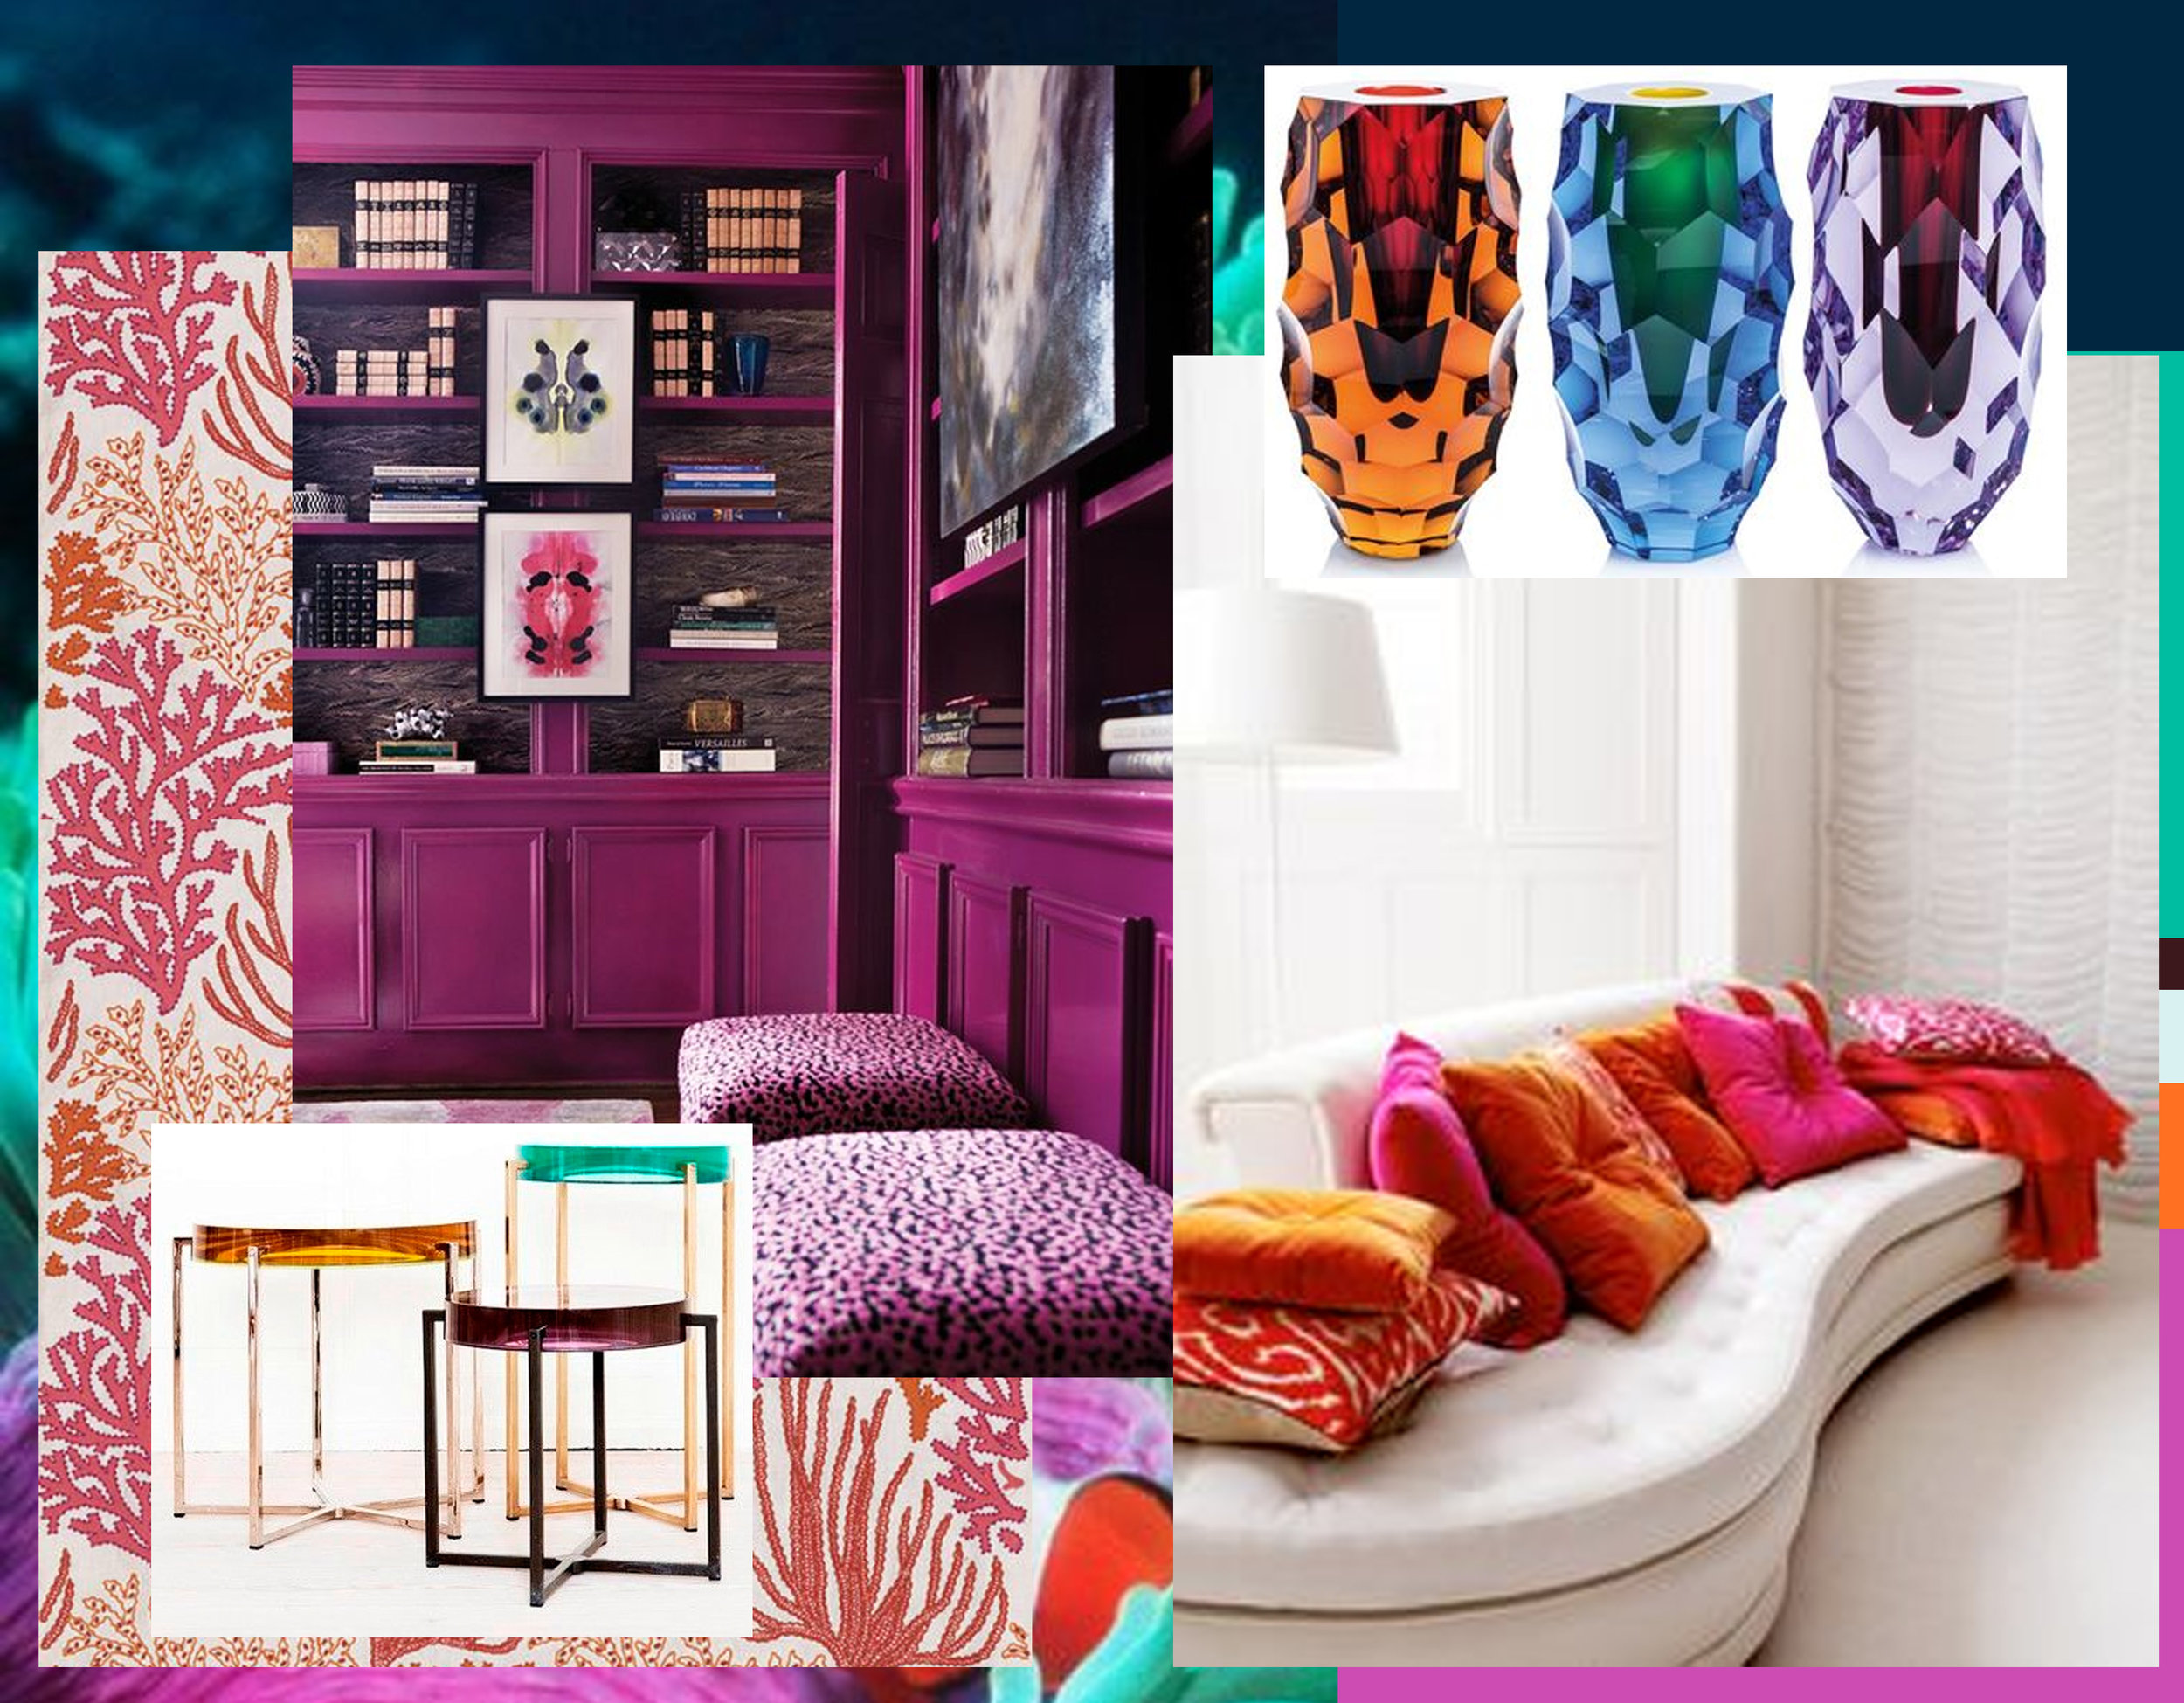 library in fuchsia via  House Beautiful  - small tables by McCollin Bryan - fabric Tobago of Lorca via  Vogue  - vases Moser collection via  M&O